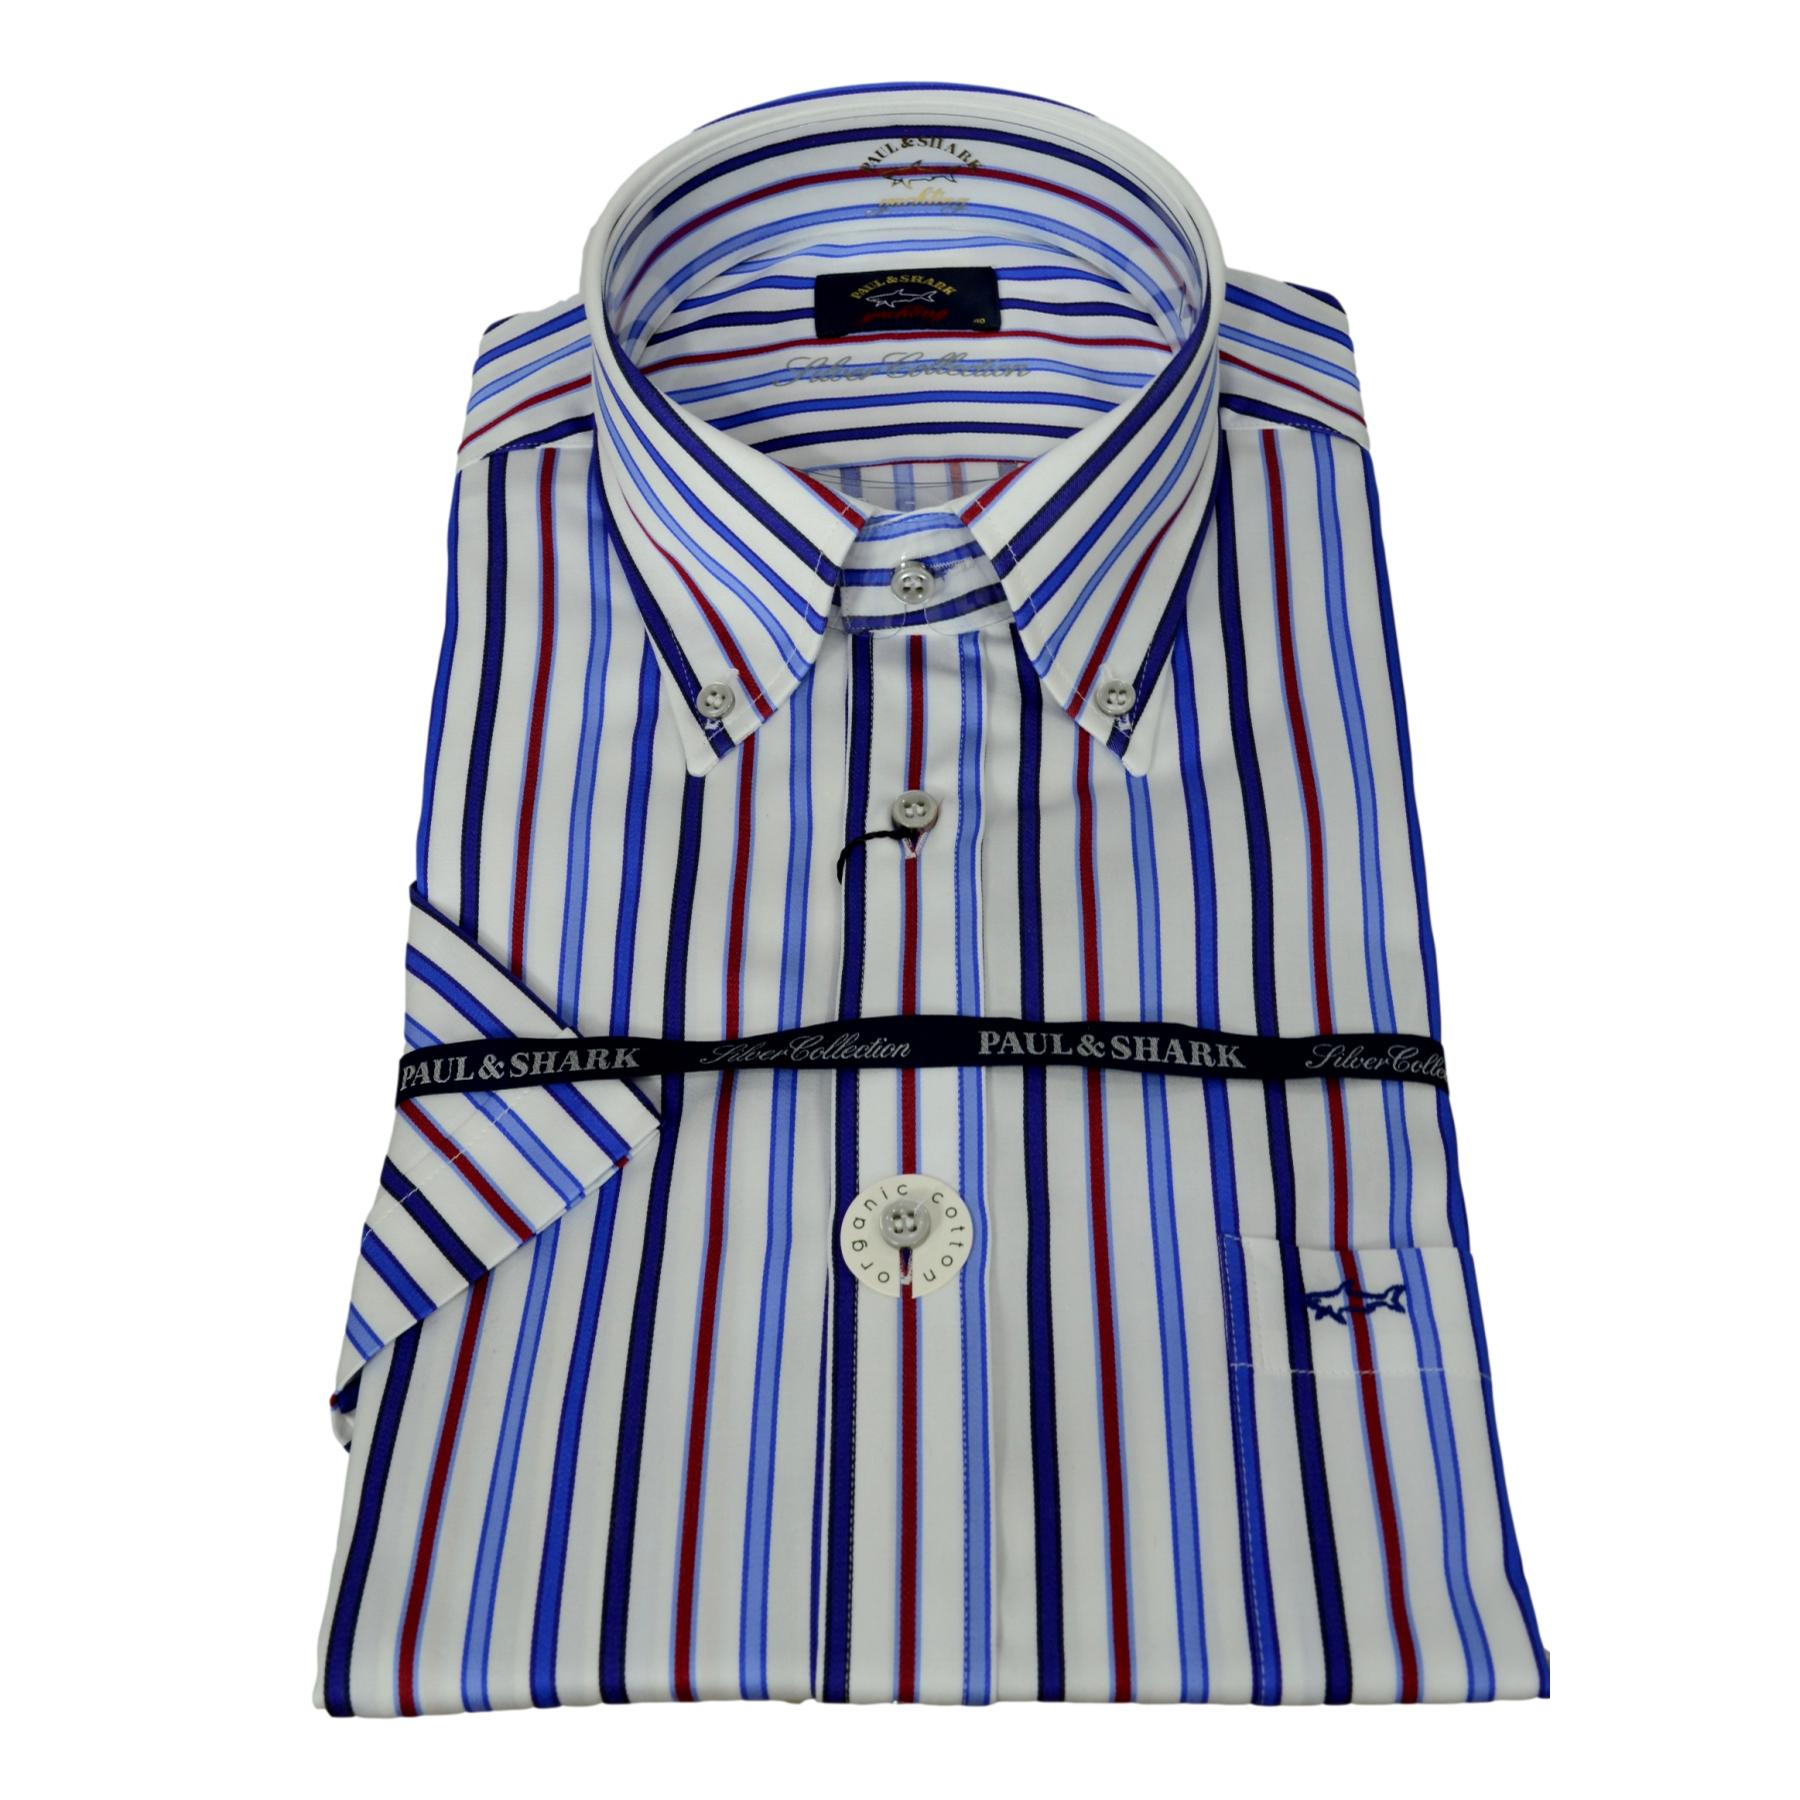 PAUL SHARK SILVER COLLECTION CAMICIA MANICA CORTA UOMO RIGATA BOTTON DOWN